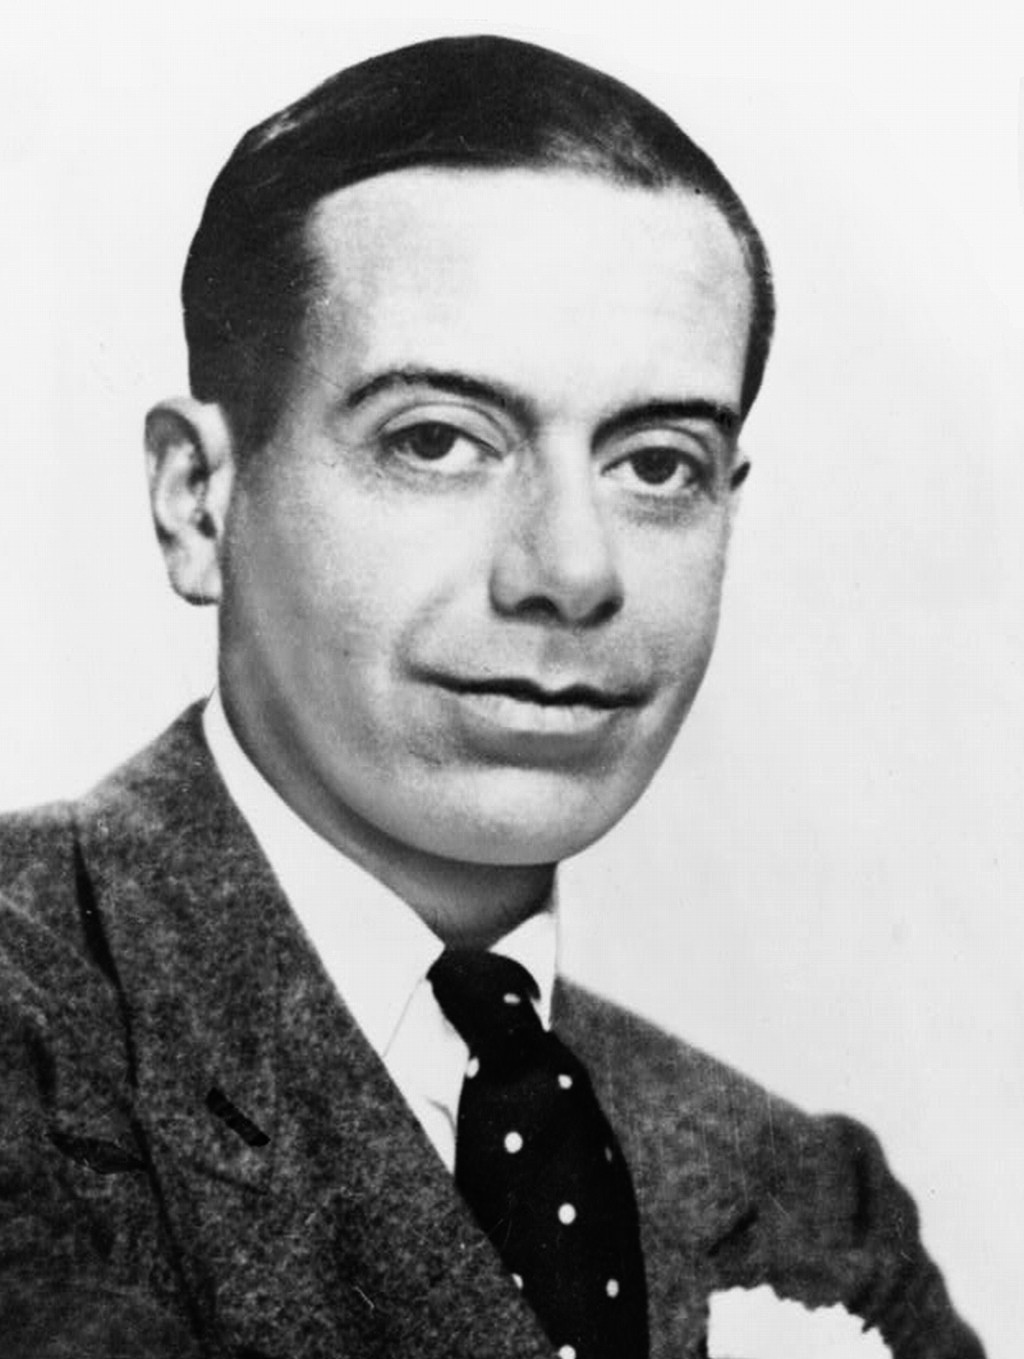 https://upload.wikimedia.org/wikipedia/commons/4/4c/Coleporter.jpg